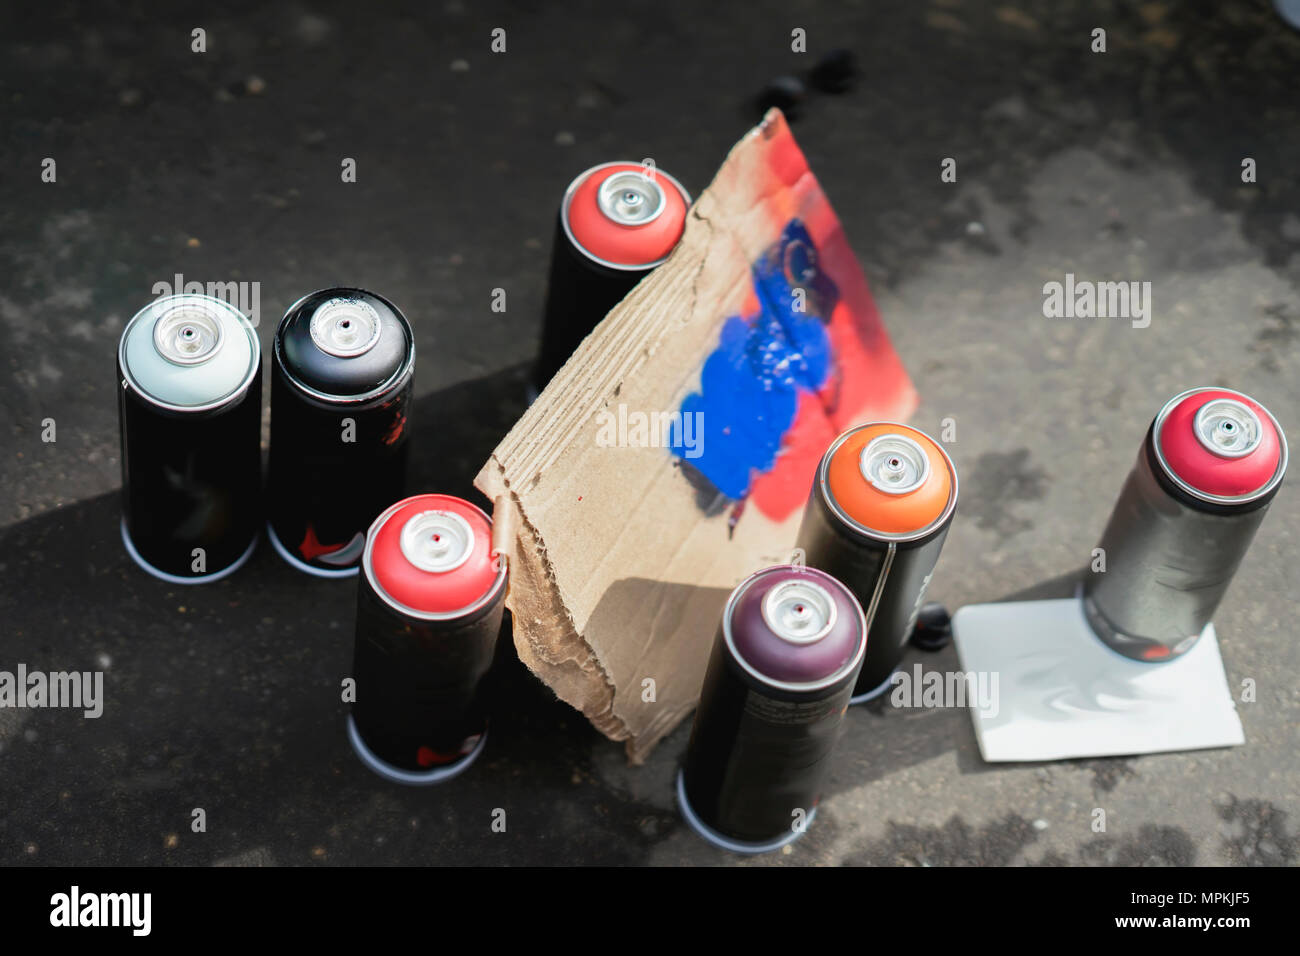 Aerosol metal cans of spray paint and cardboard palette for paint, graffiti on dark background of asphalt. Urban contemporary iconic culture of street youth Stock Photo